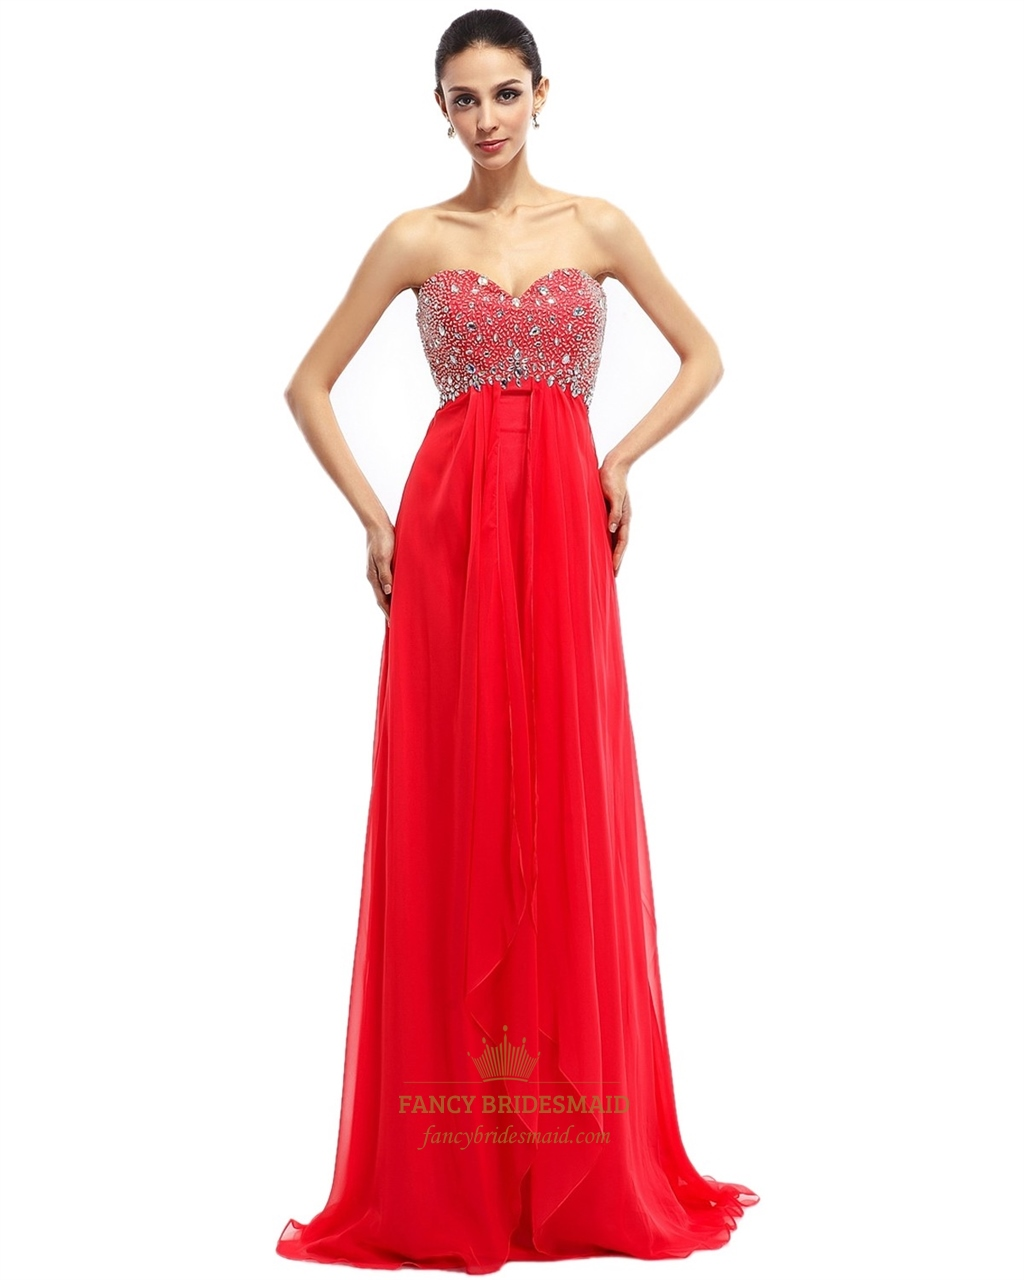 eab59daed3f Red Short Strapless Asymmetrical Bridesmaid Dresses With Flower Detail SKU  -NW644